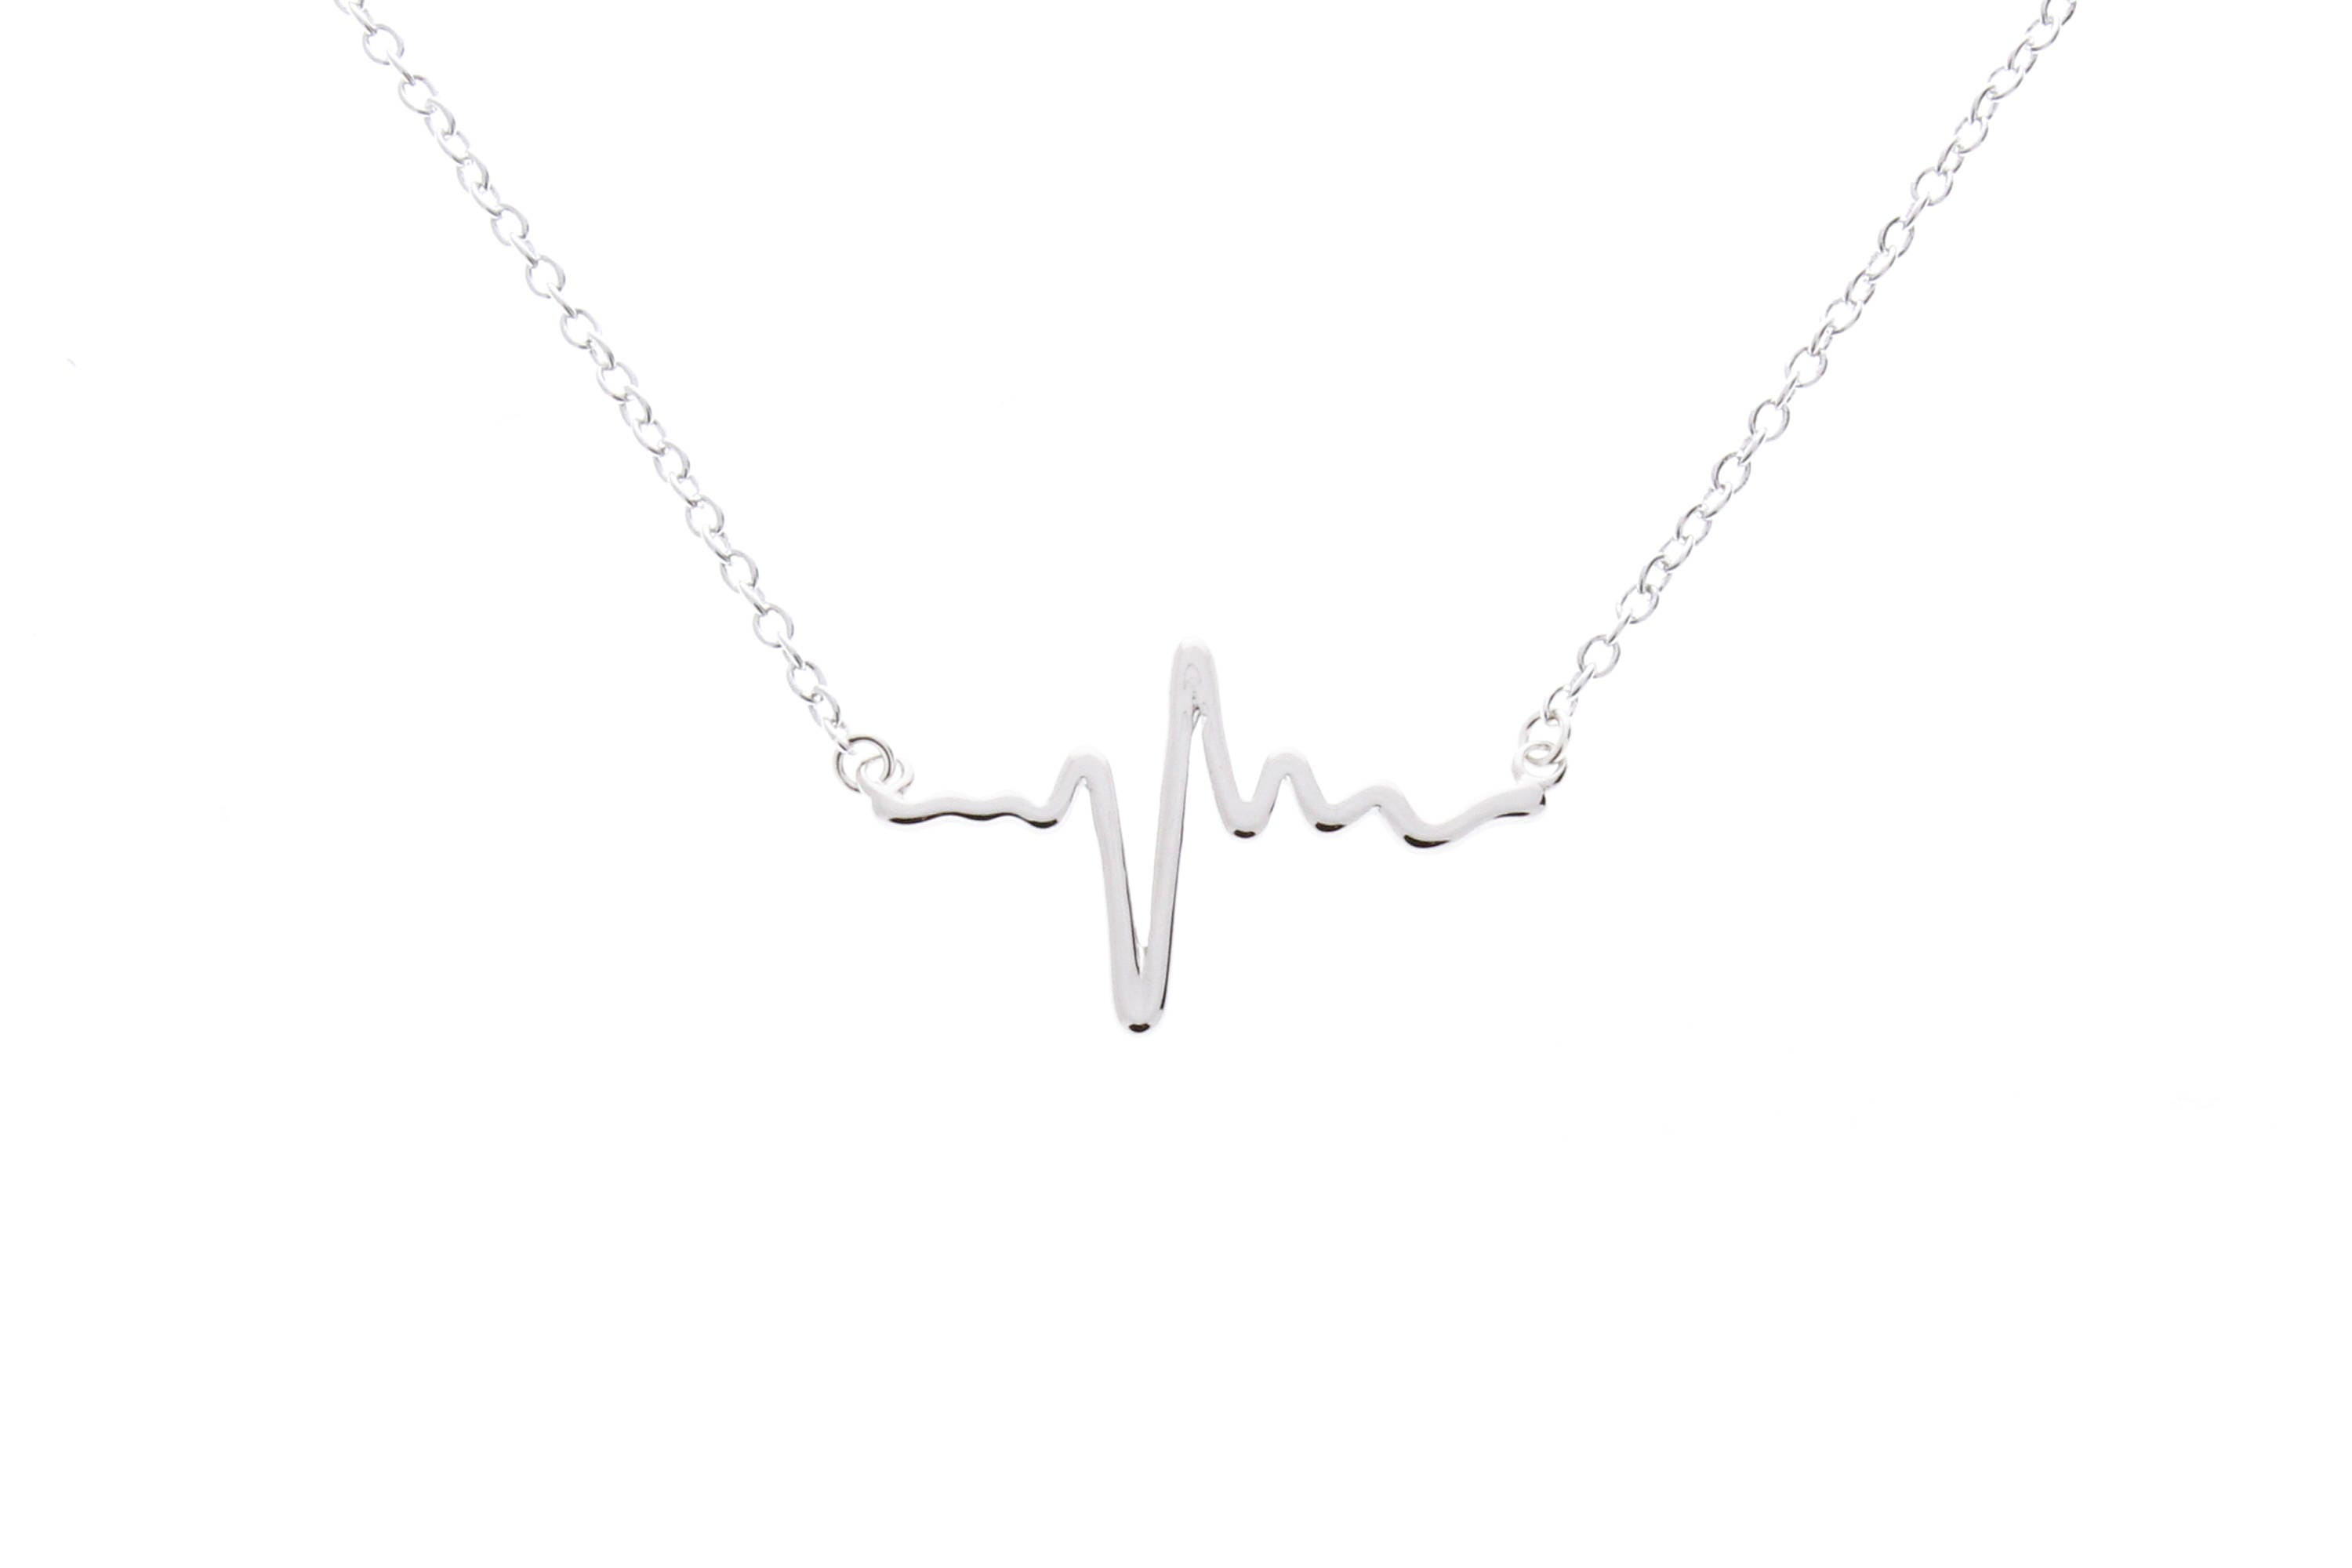 delicate everafterguide doctor pulse nurse gold chain gift heartbeat necklace ecg jewelry medical for com